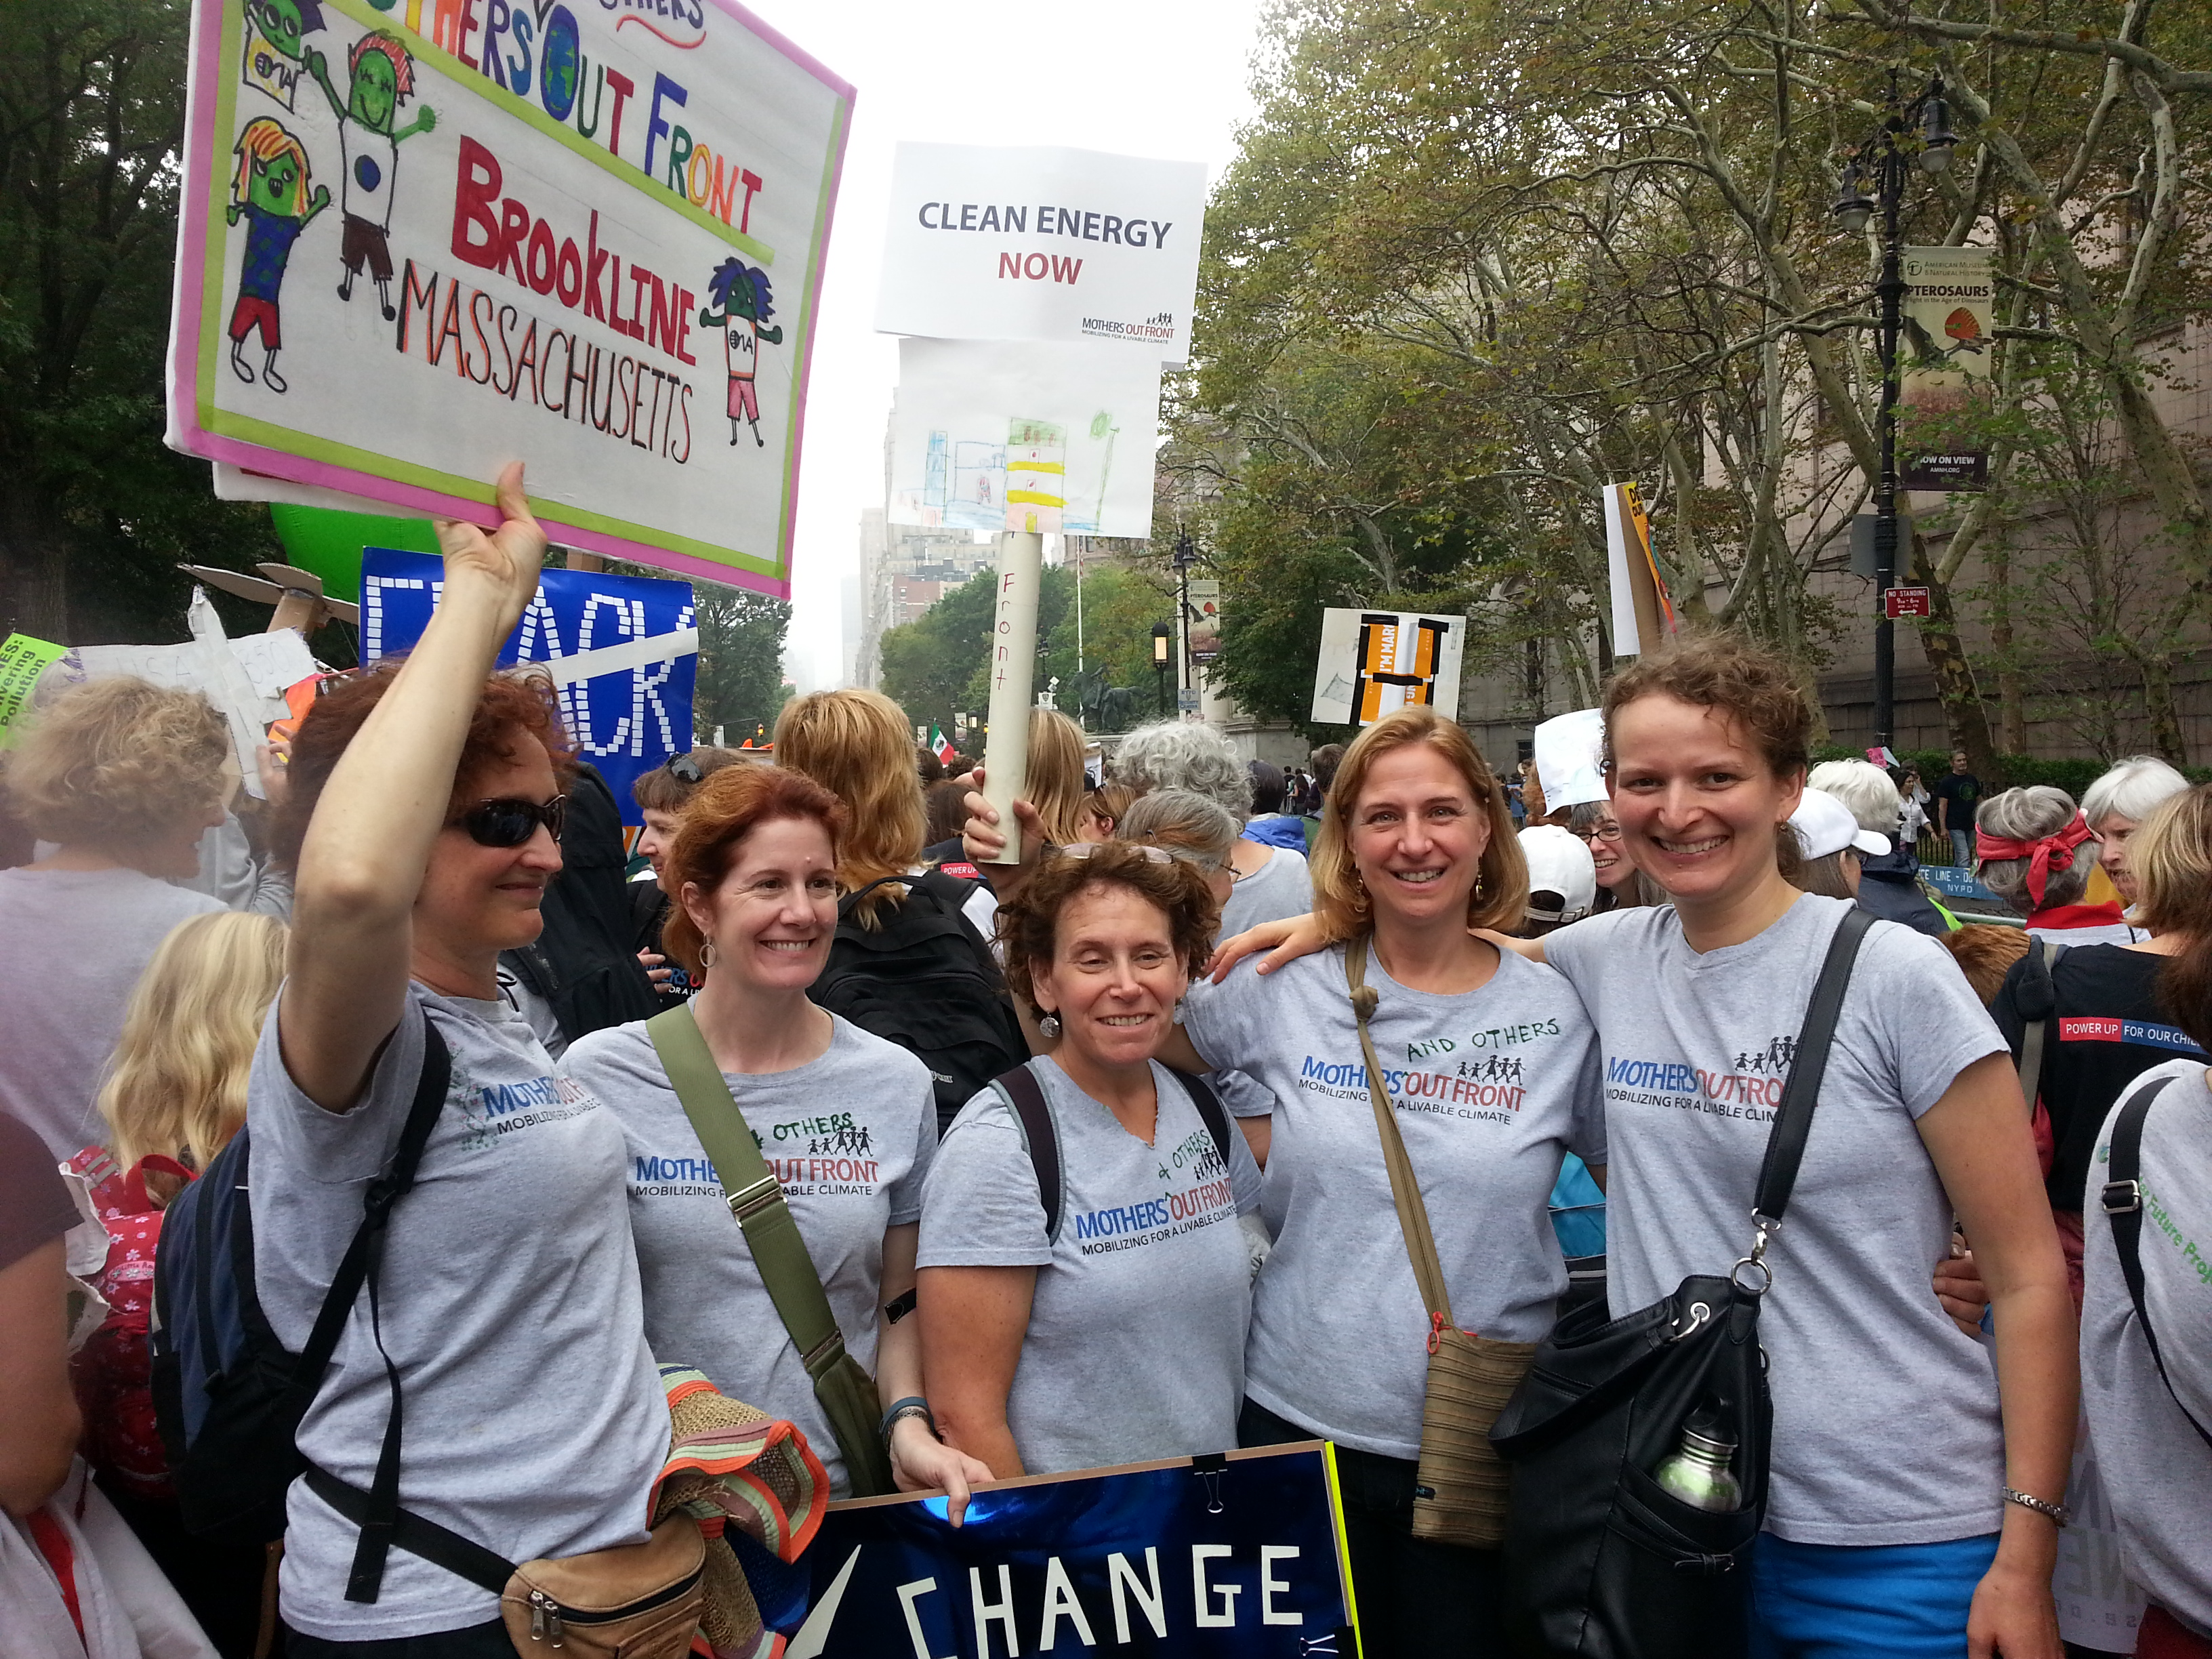 pcm_brookline_team_at_the_peoples_climate_march.jpg